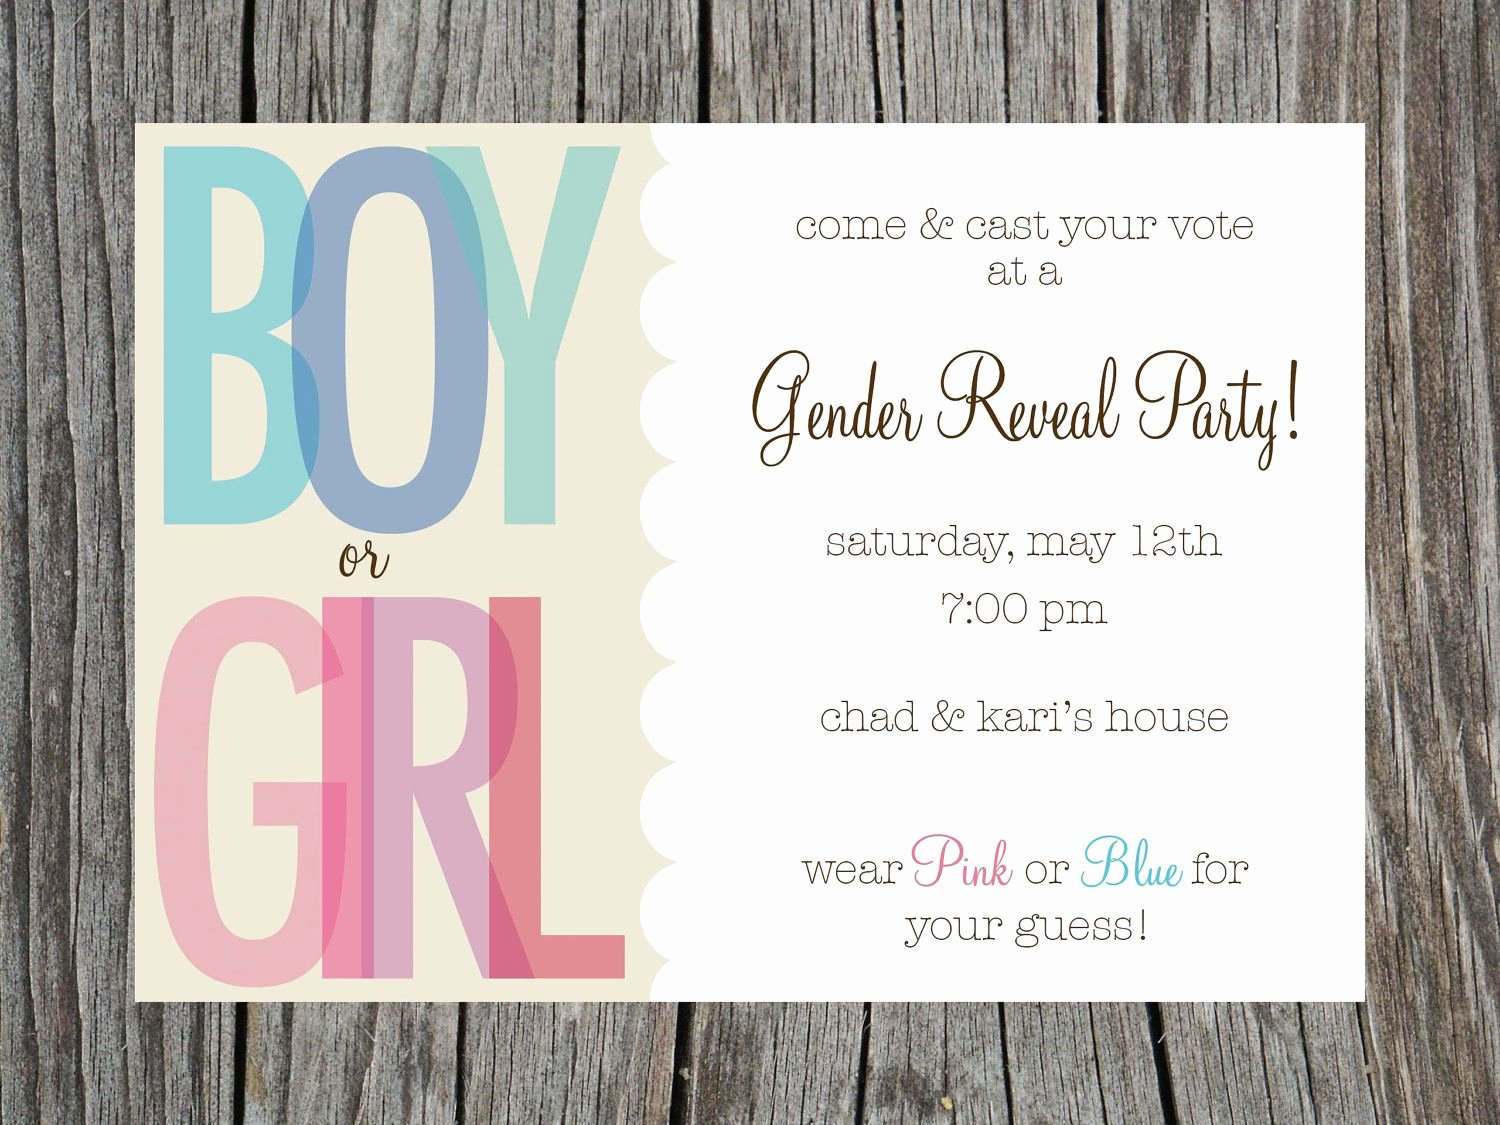 Free Gender Reveal Templates Inspirational Gender Reveal Party Invitations Free Templates Invitstiond by Own